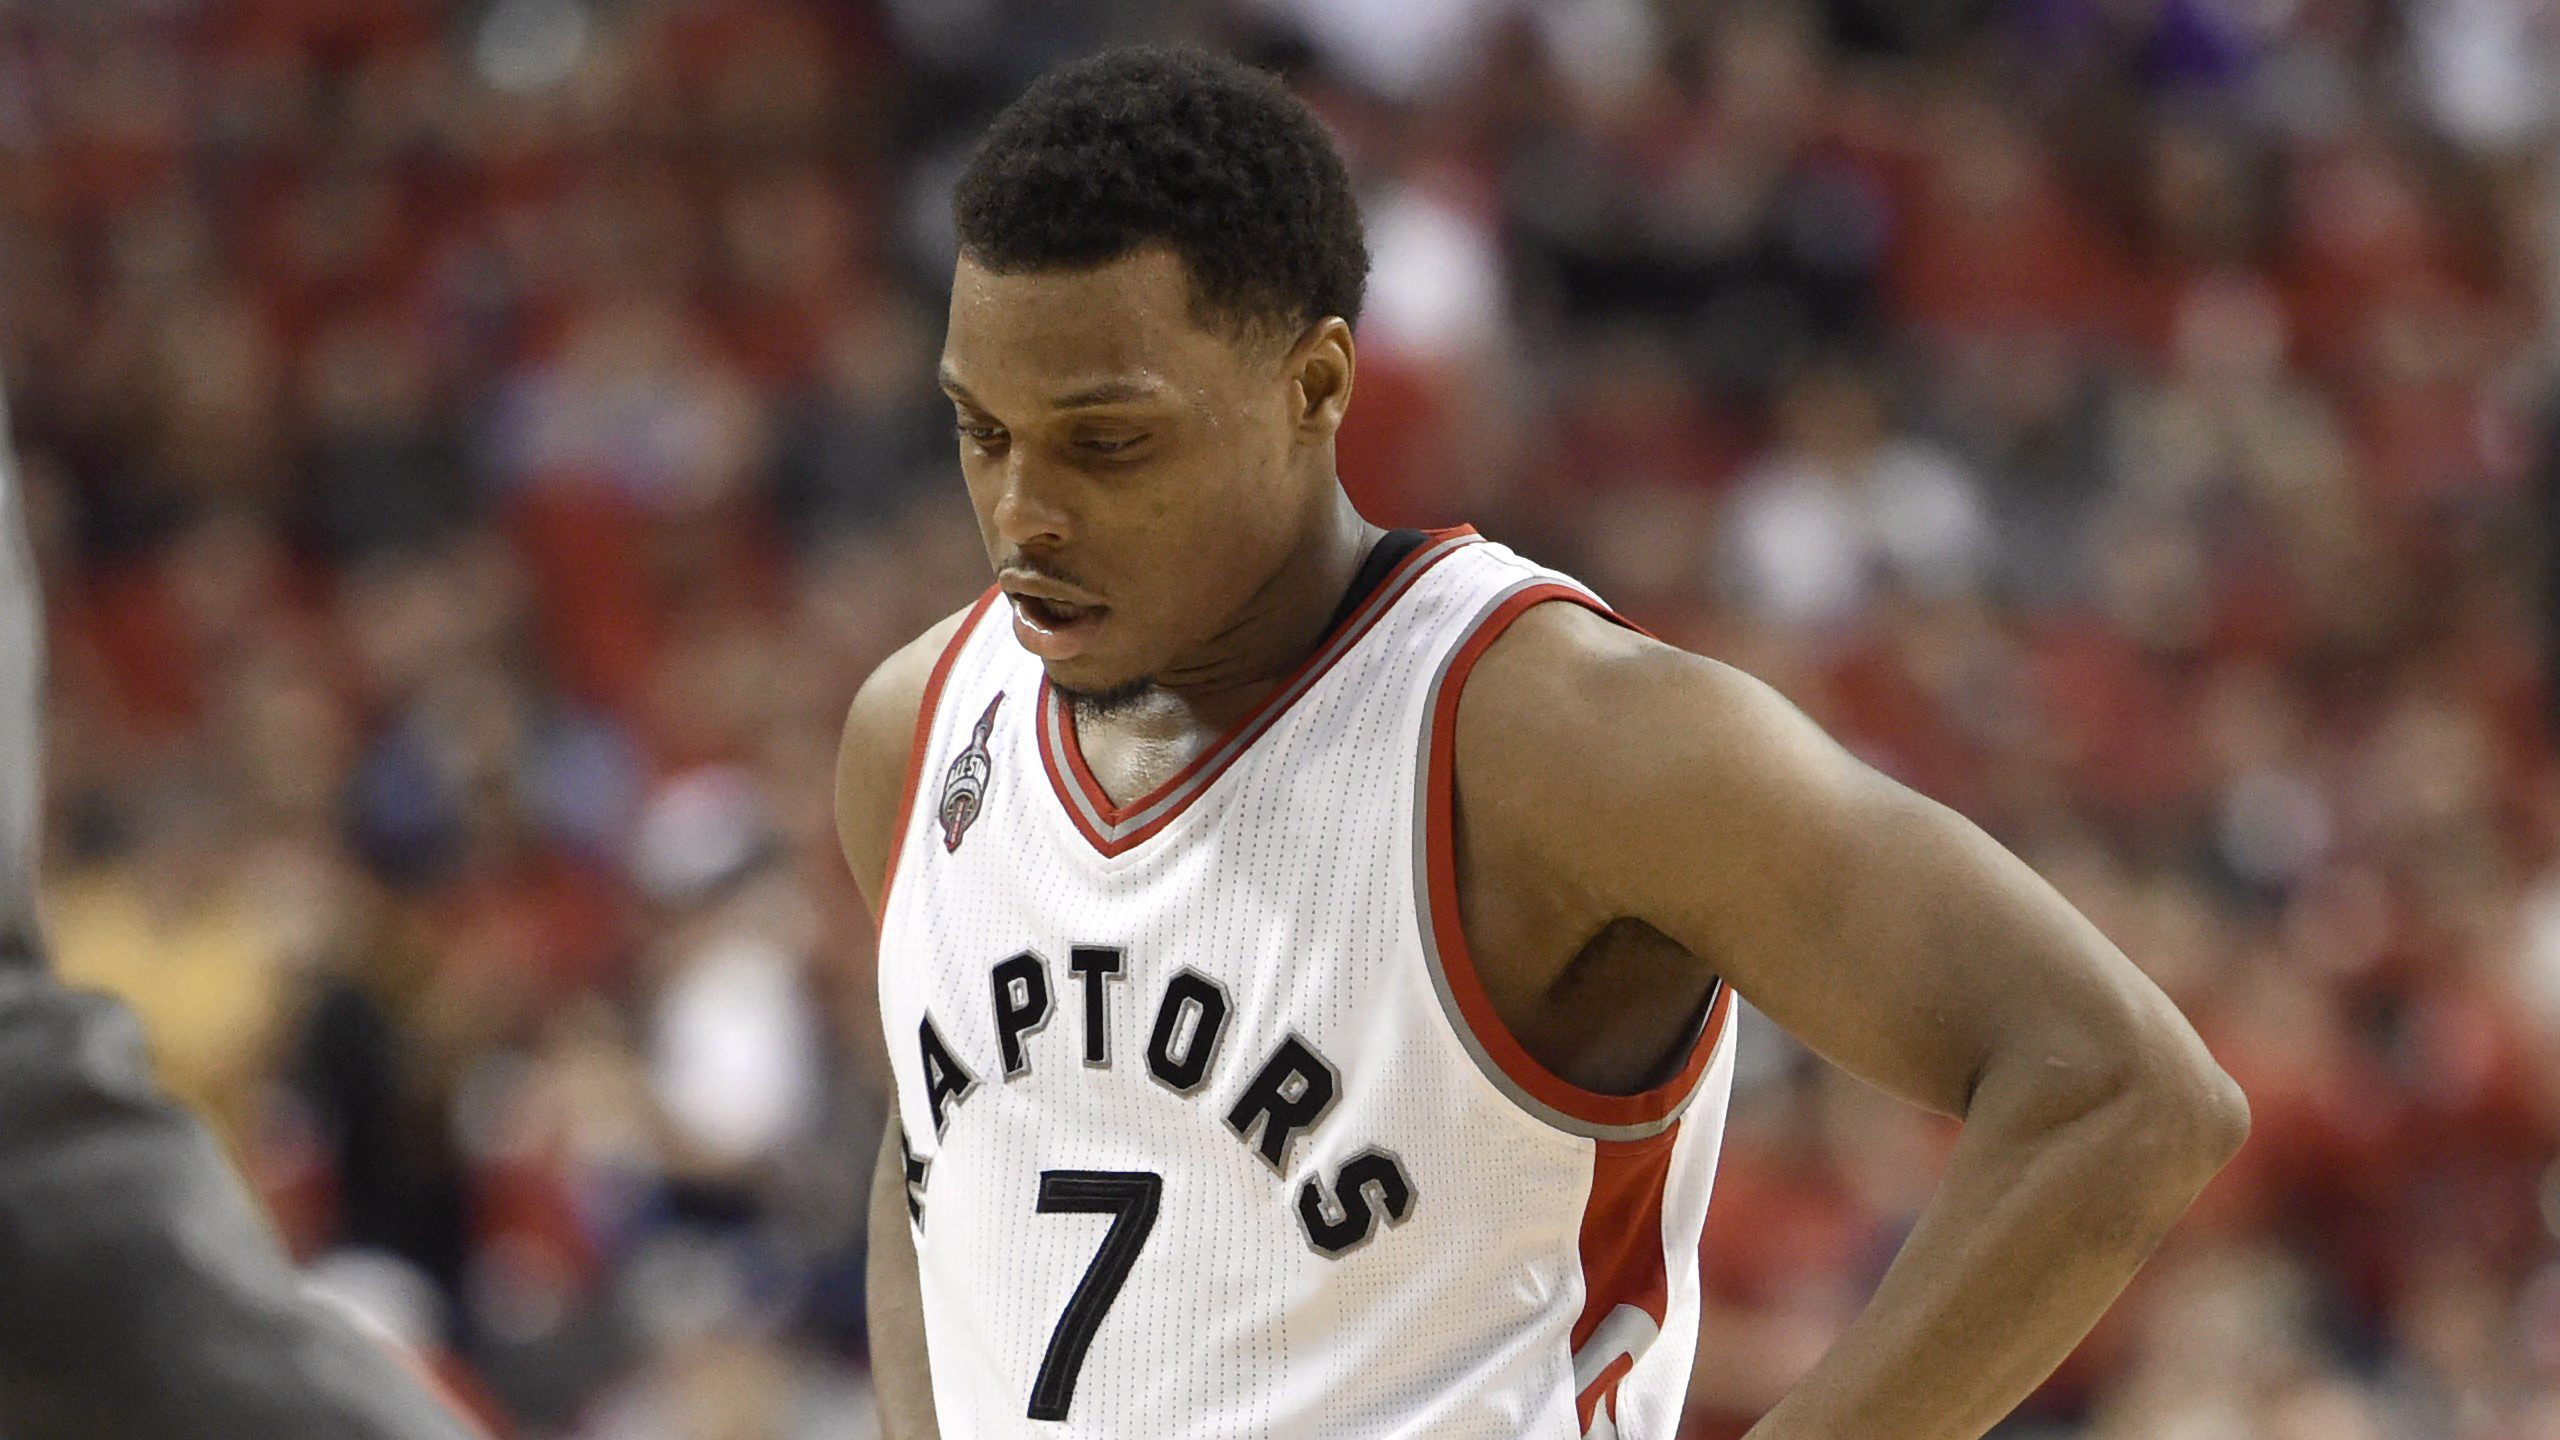 Raptors back in charge after Game 5 win over Wizards